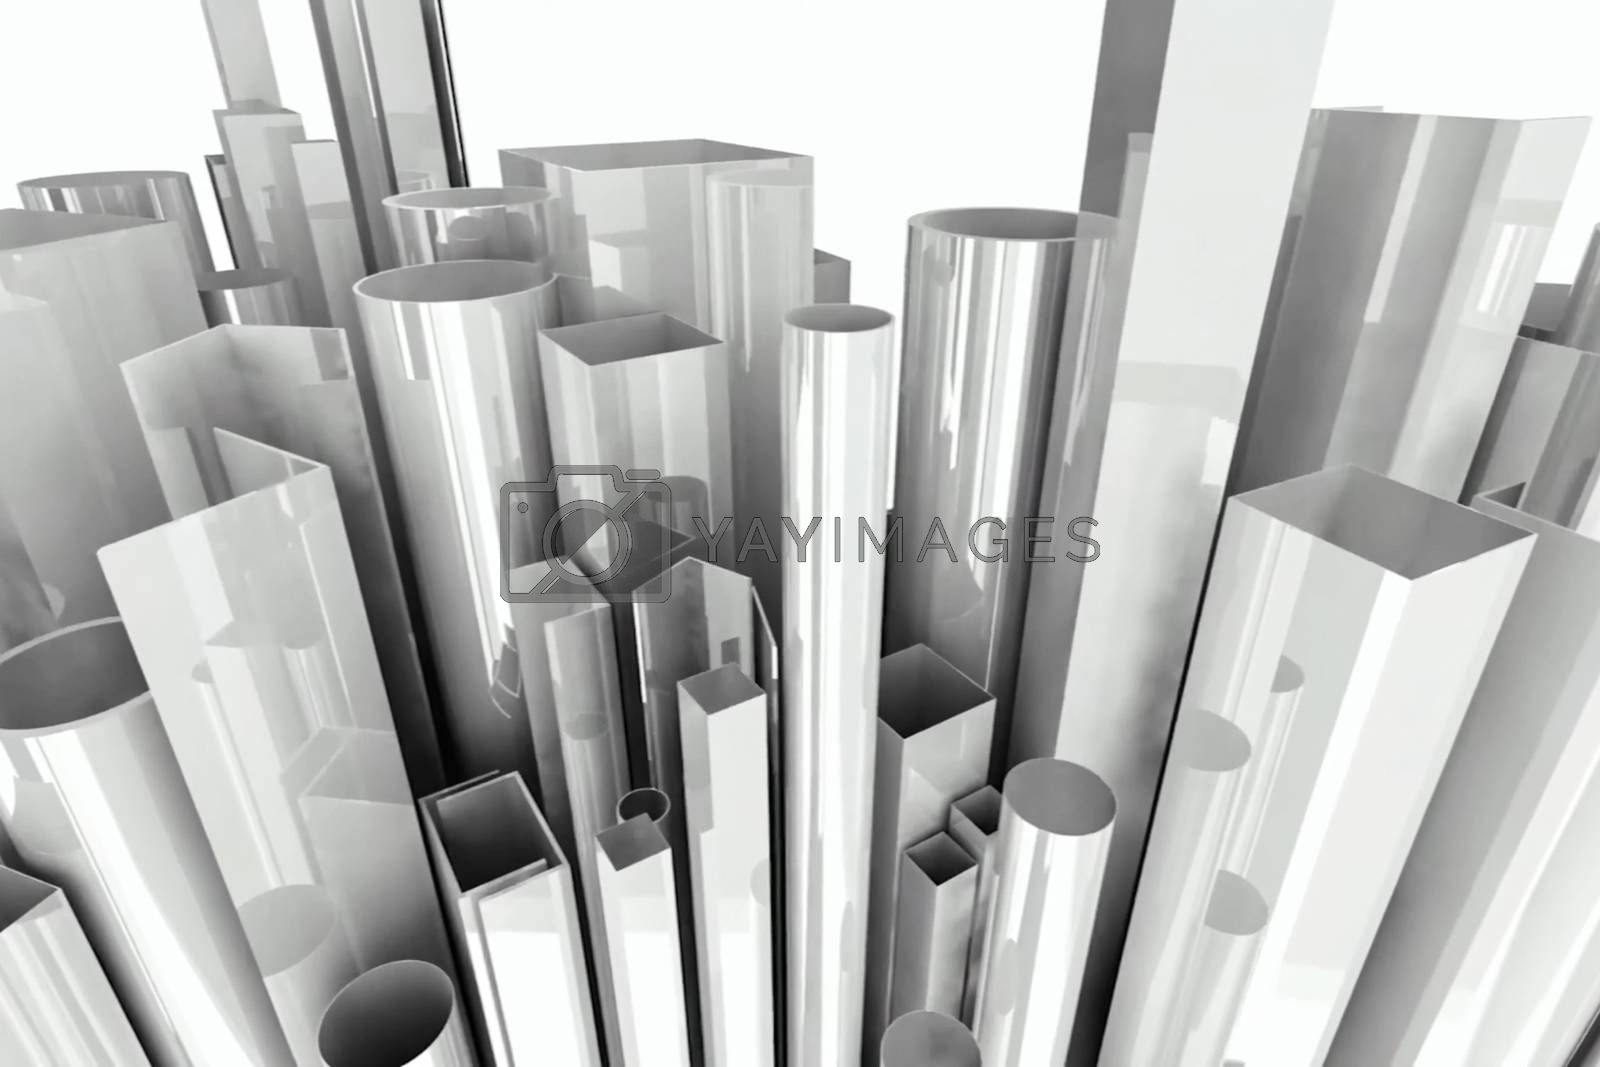 Illustration of round and square white pipes of different heights.